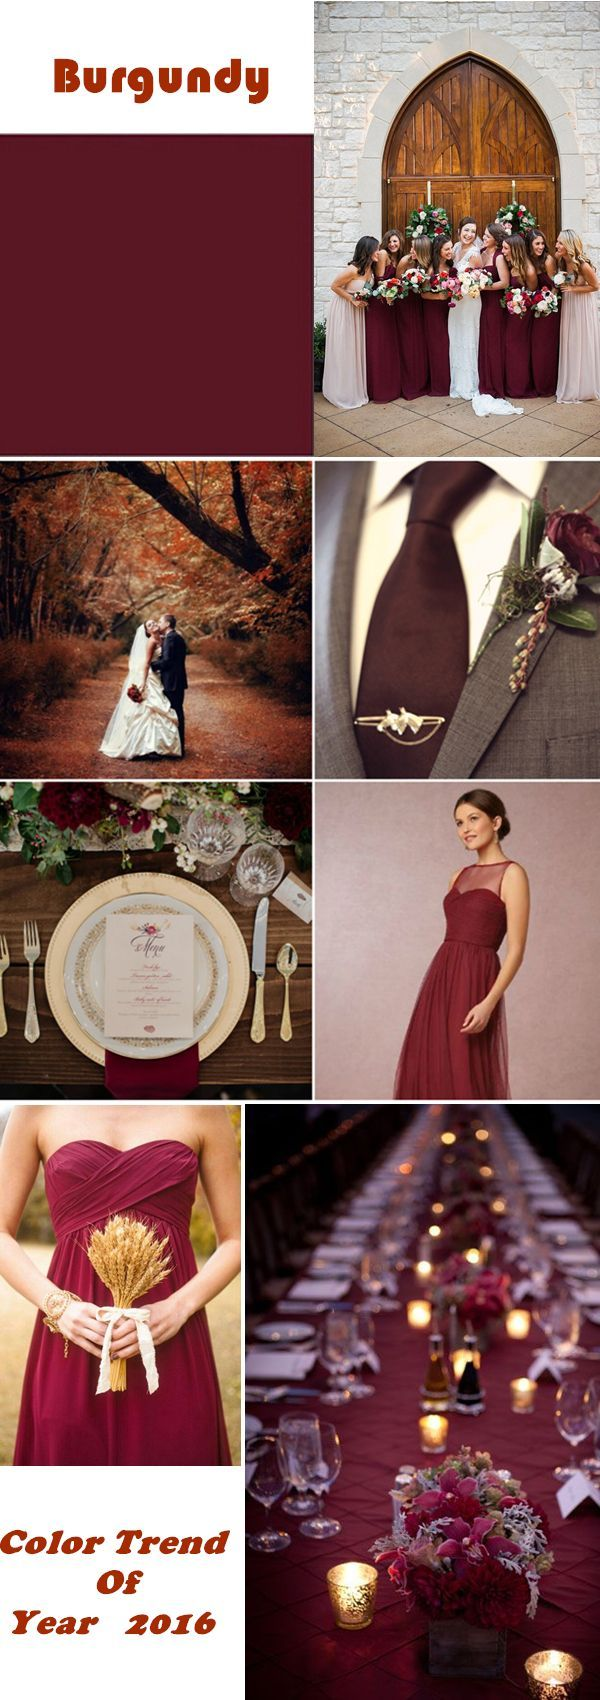 169 best Wedding Color Palettes images on Pinterest | Marriage ...